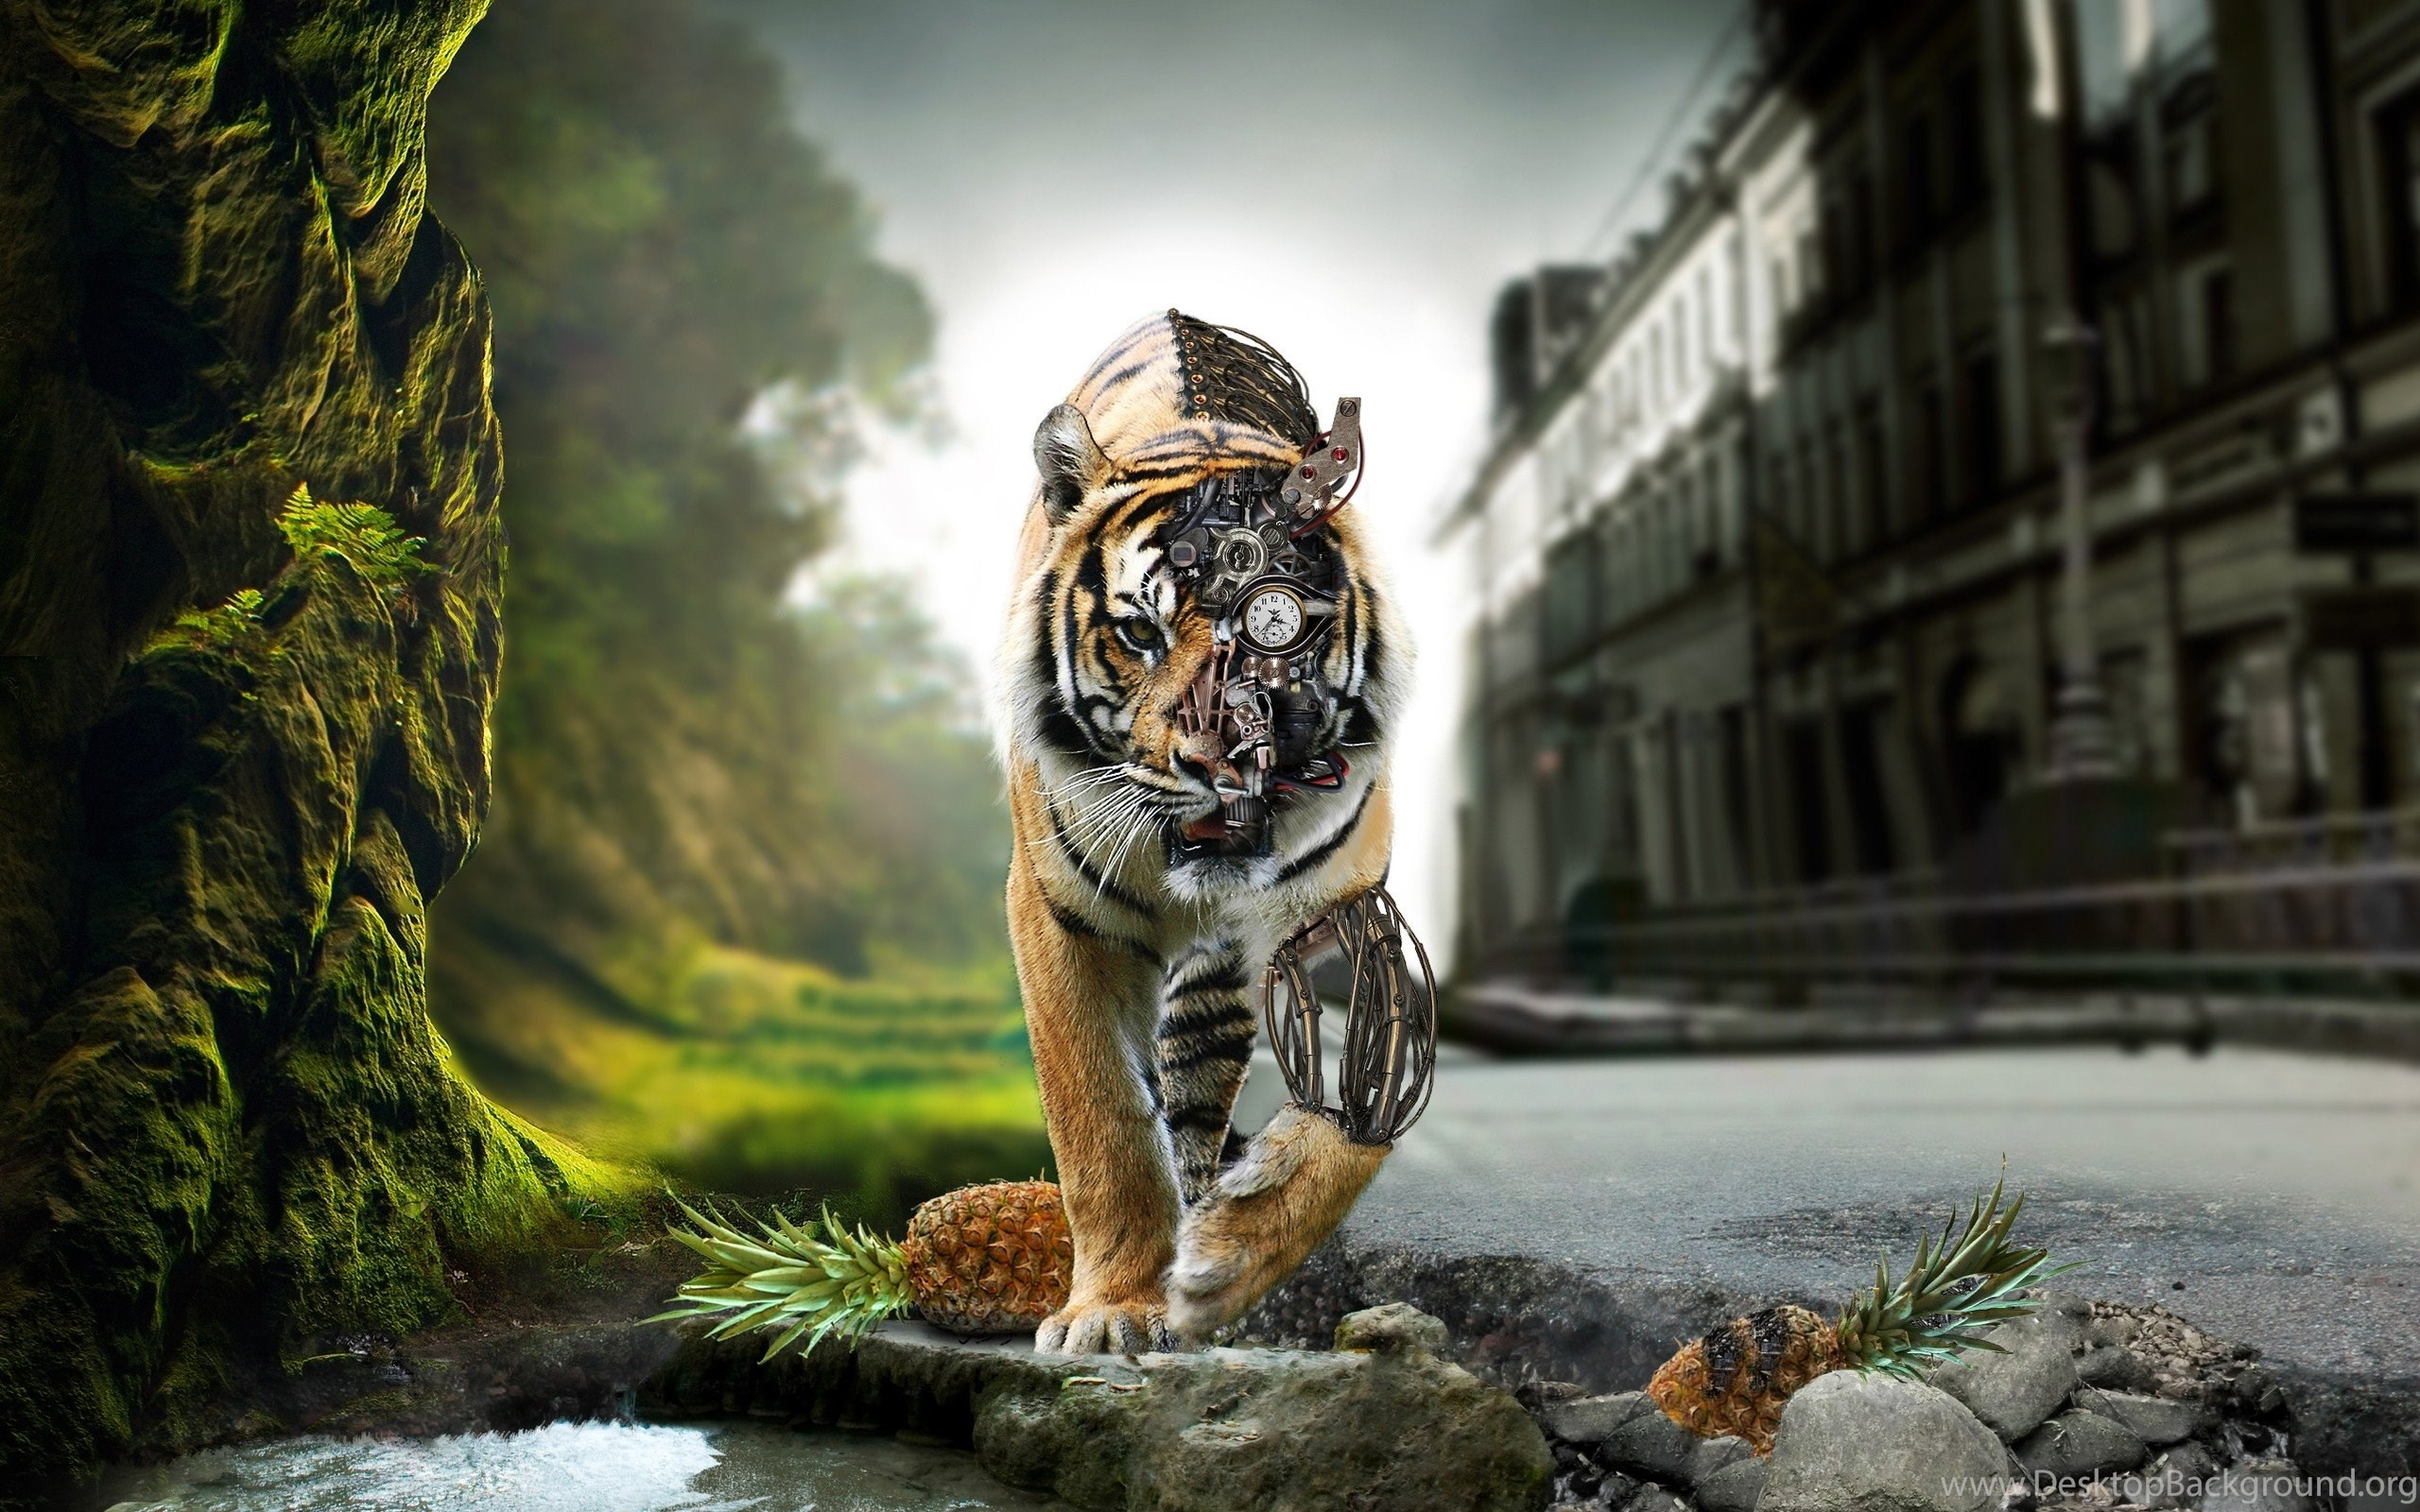 Download The Cyborg Tiger Wallpaper Cyborg Tiger Iphone Wallpapers